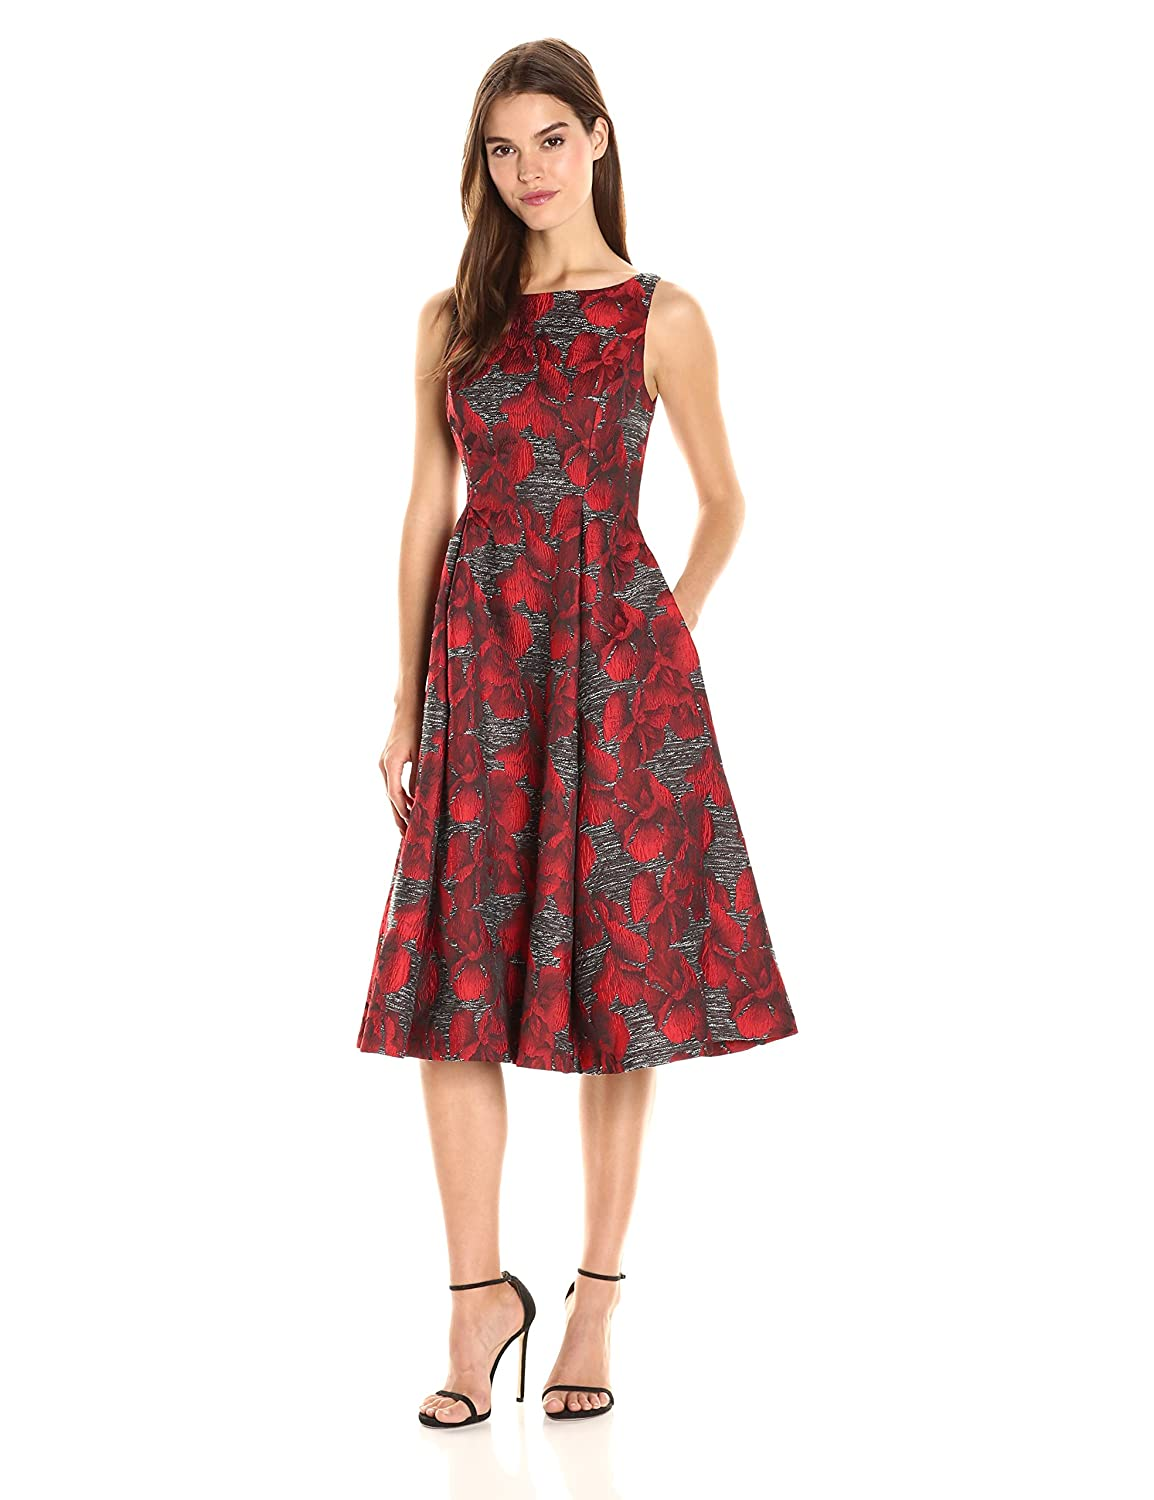 Black Crimson Adrianna Papell Womens Sleeveless Jacquard Cocktail Dress Dress